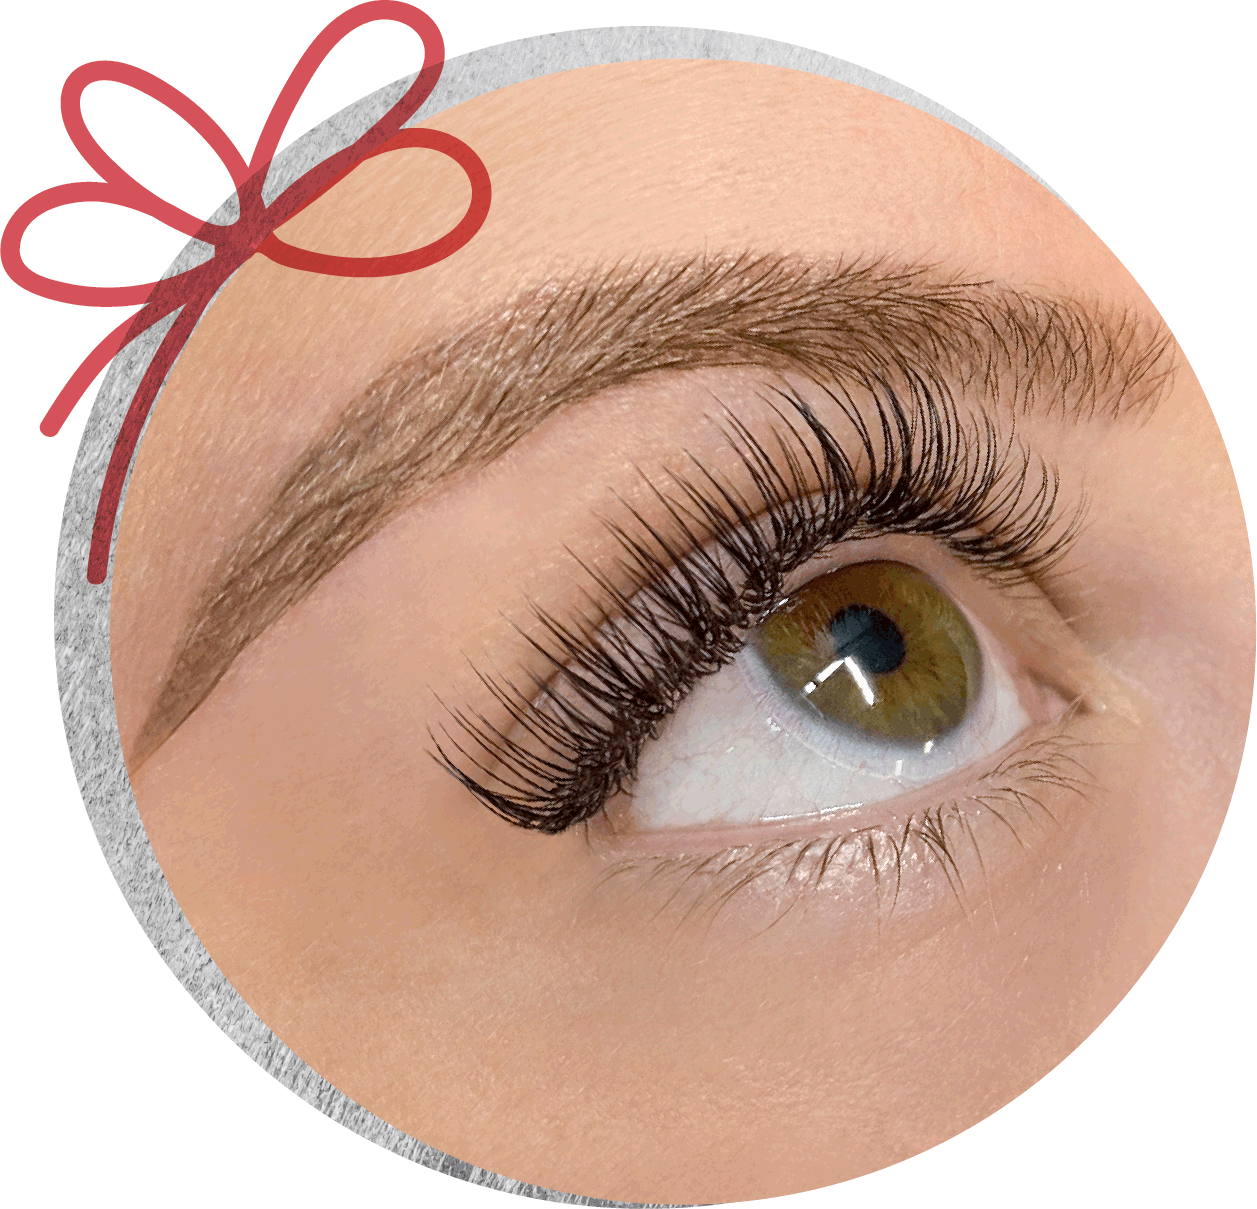 The Lash Lounge Customer Microblade Eyebrows and Eyelash Extensions